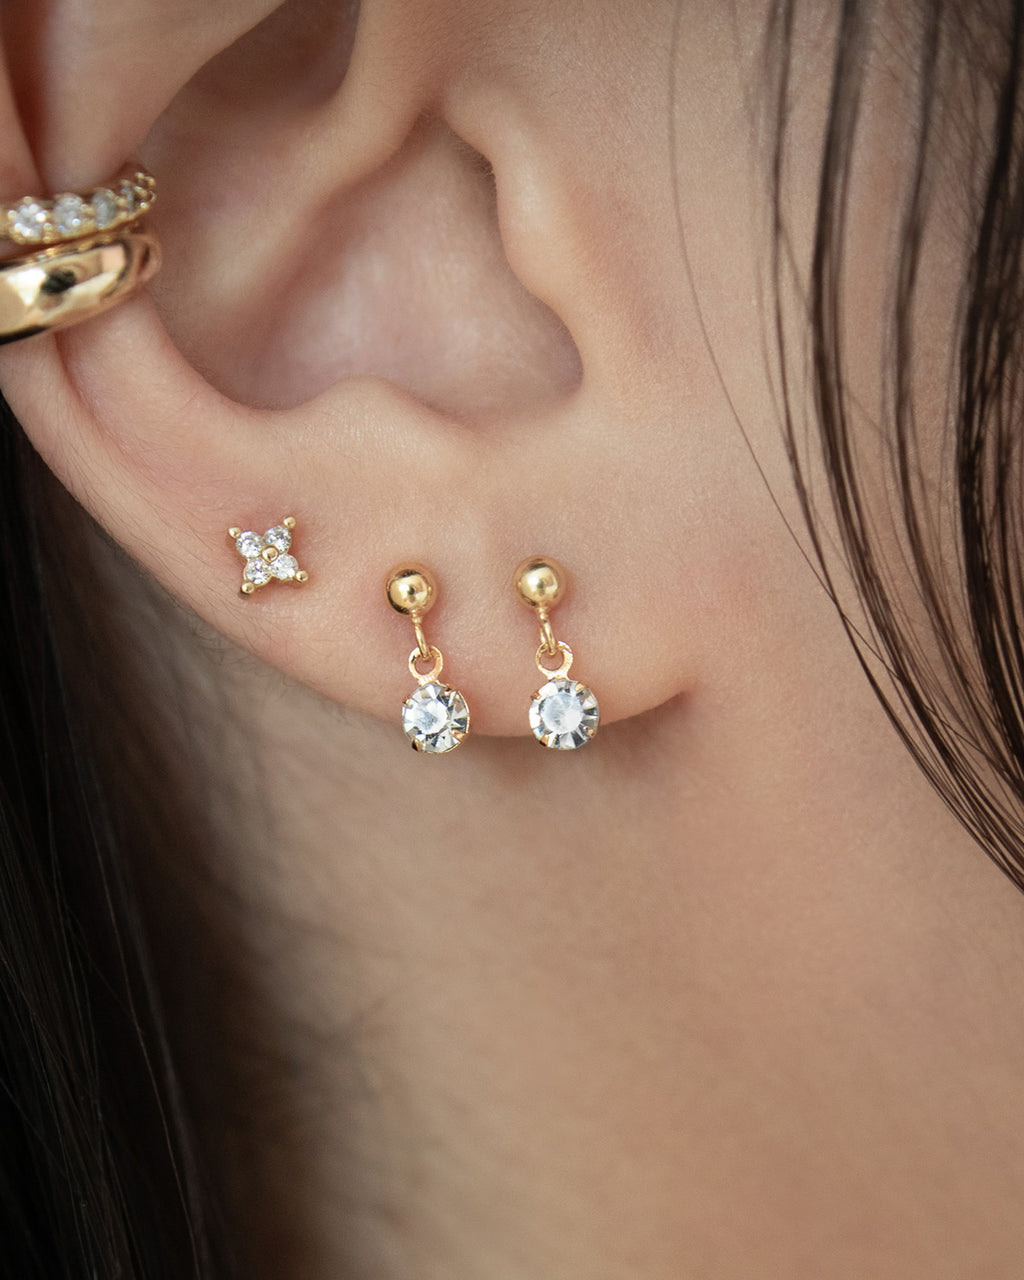 chic charm earrings layered with ear cuffs by jewelry label the hexad